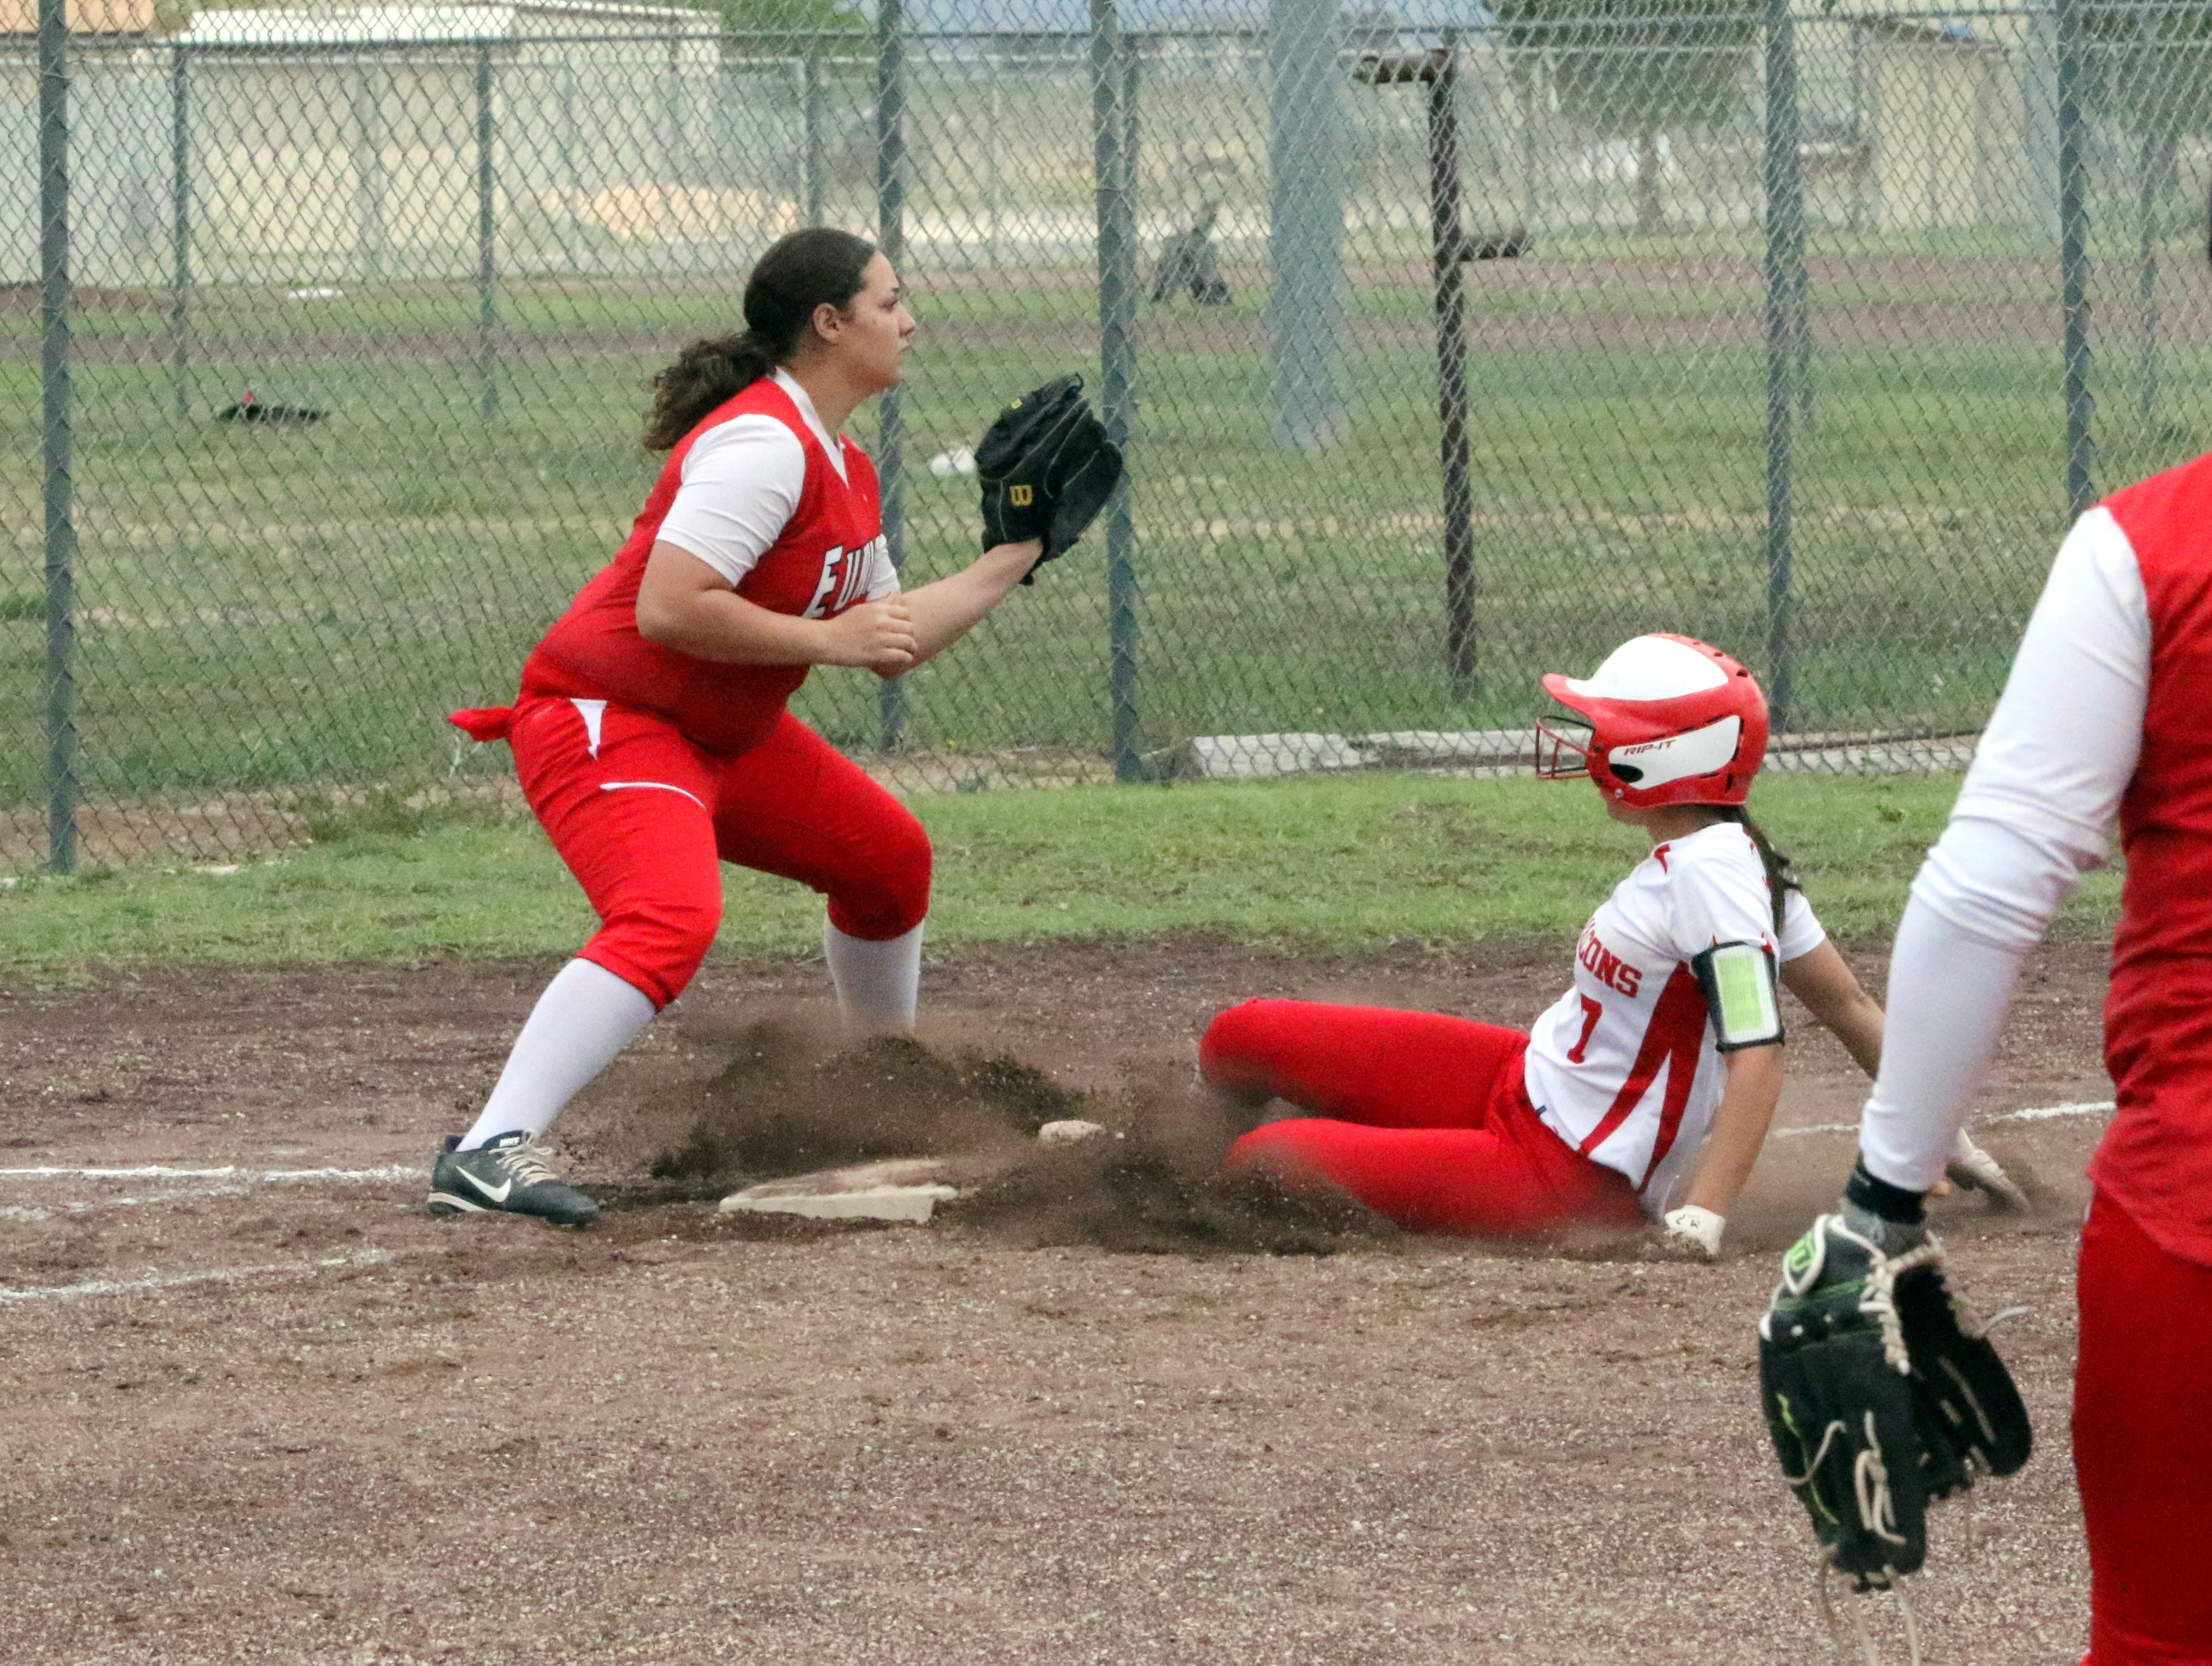 Frankie Hernandez safely slides into third base during Saturday's doubleheader. Eunice won Game 1, 13-12 and Loving won Game 2, 16-6.